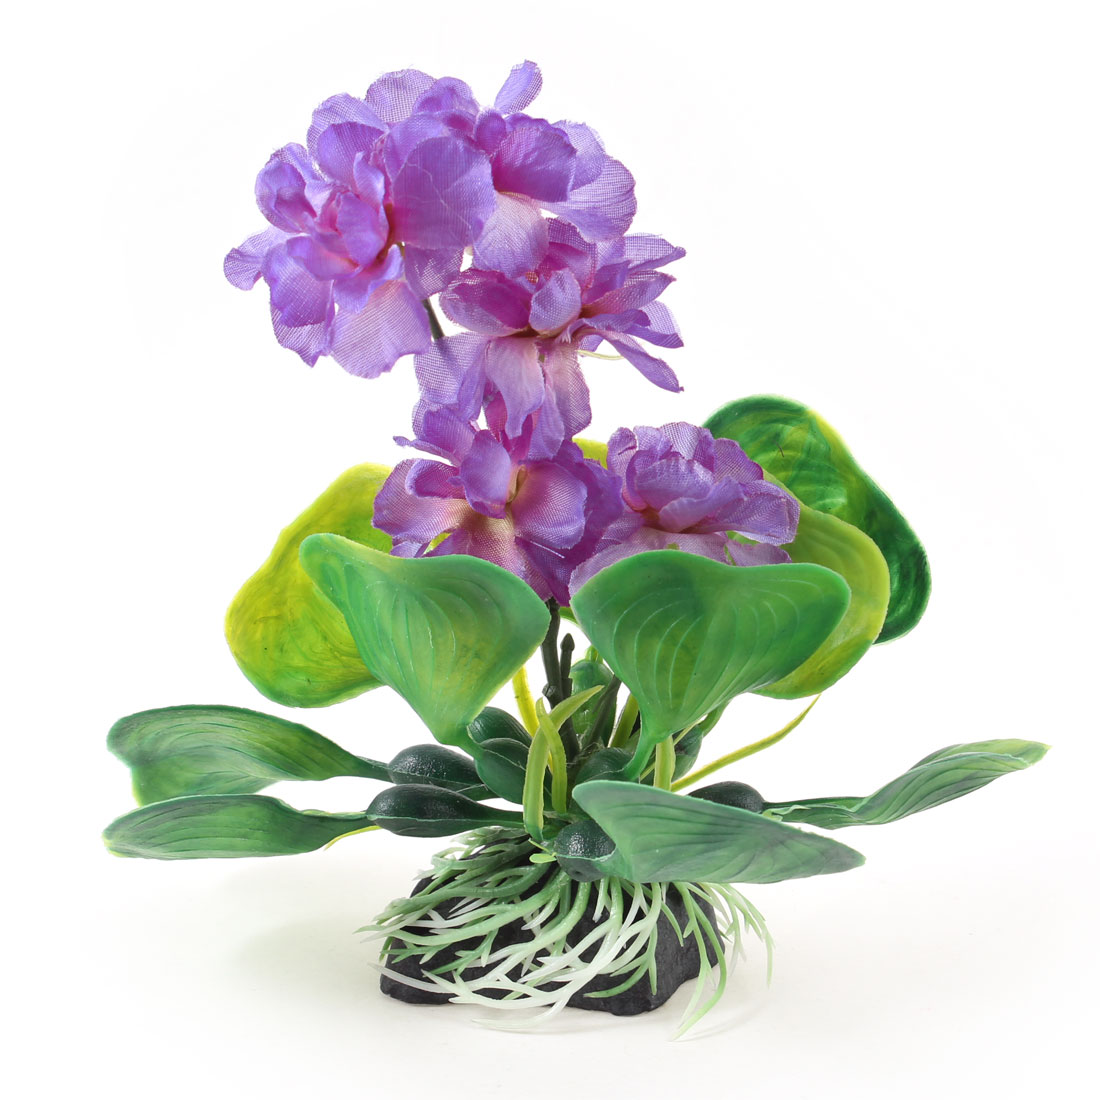 Purple Green Non Fabric Plastic Underwater Plant 14.5cm High Decor for Aquarium